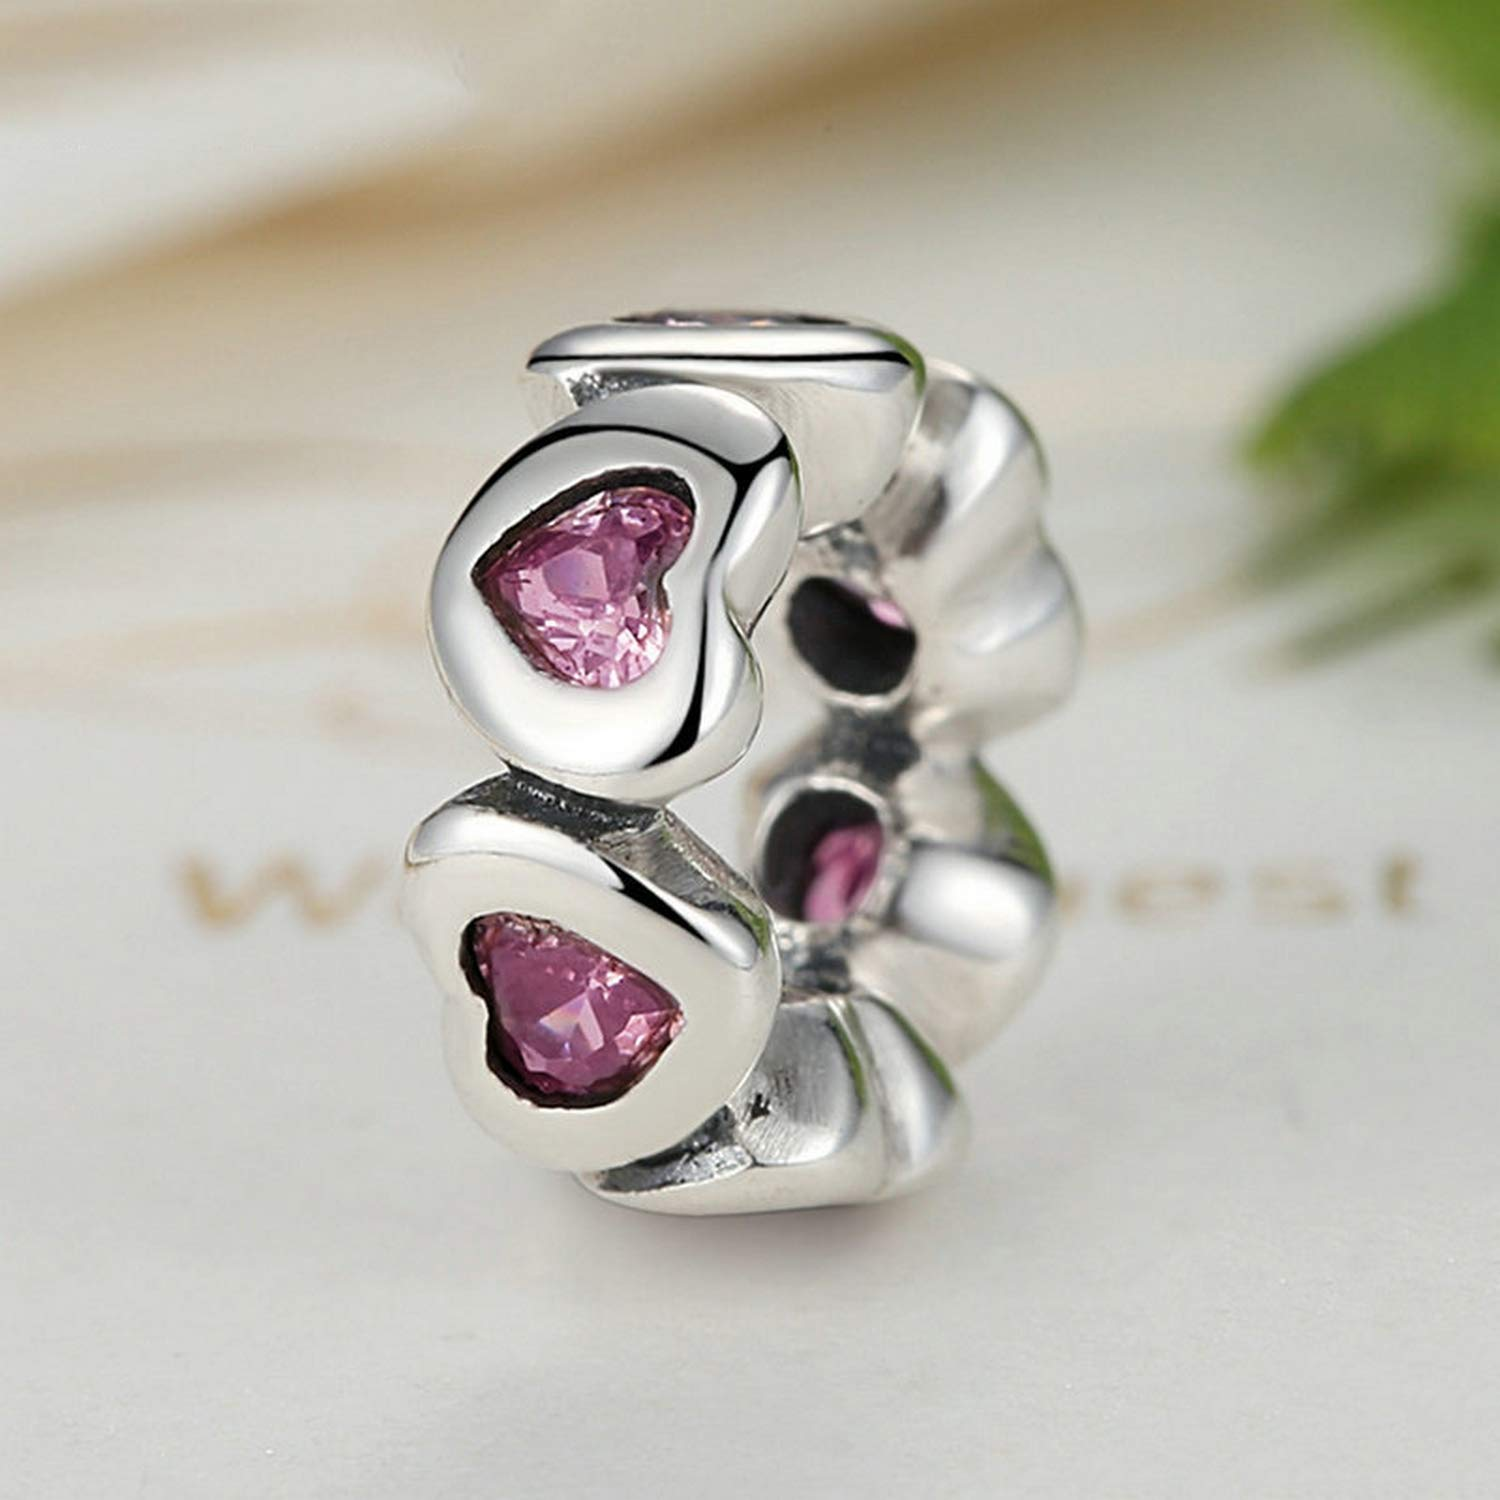 Evereena Silver Beads Bracelet for Girls Fancy Pink Sparking Heart Gifts Spacer Charm Womens Jewelry